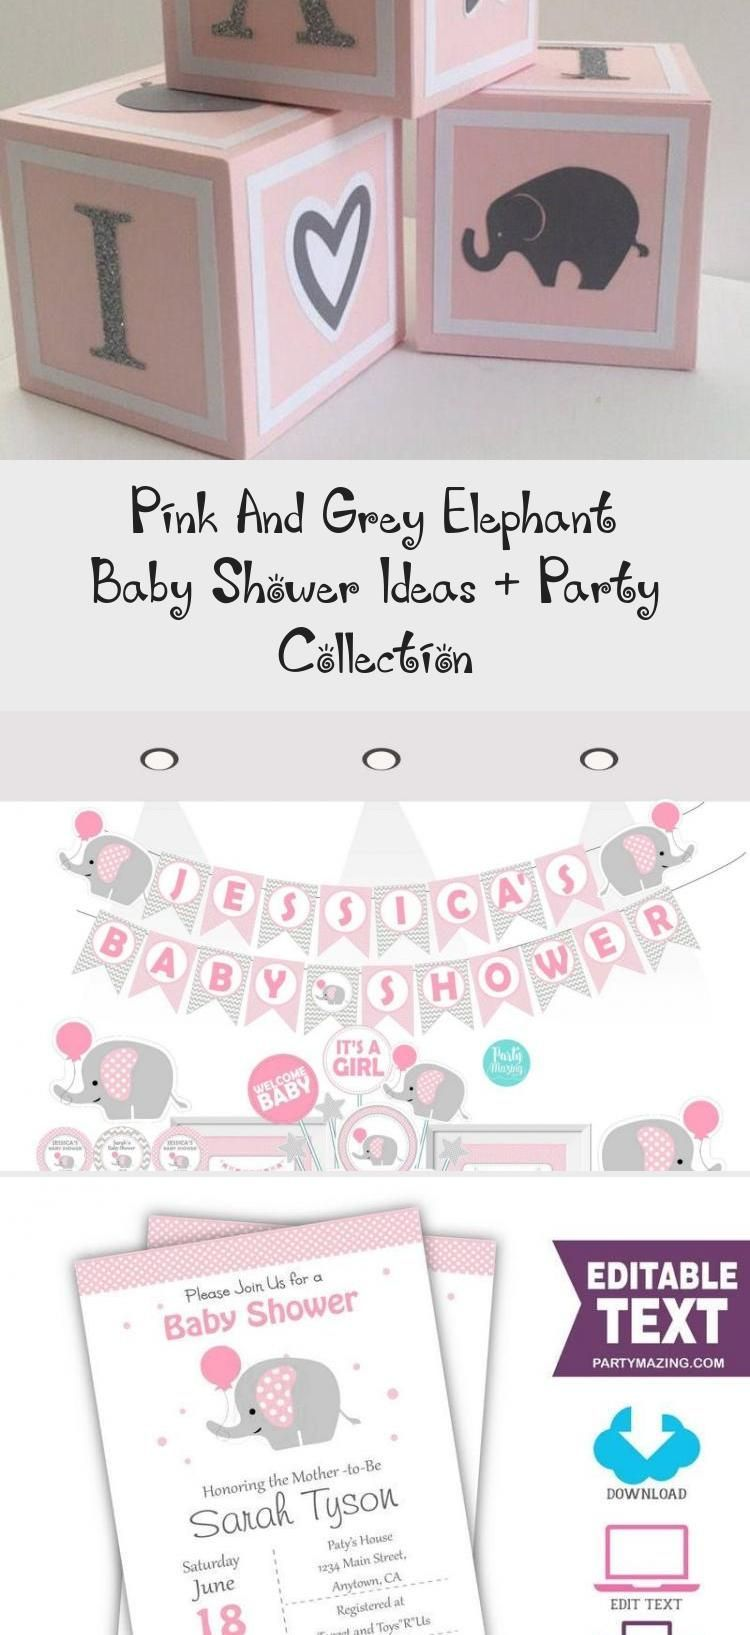 Pink And Grey Elephant Baby Shower Ideas + Party Collection - health and diet fitness -  Pink and Gr...